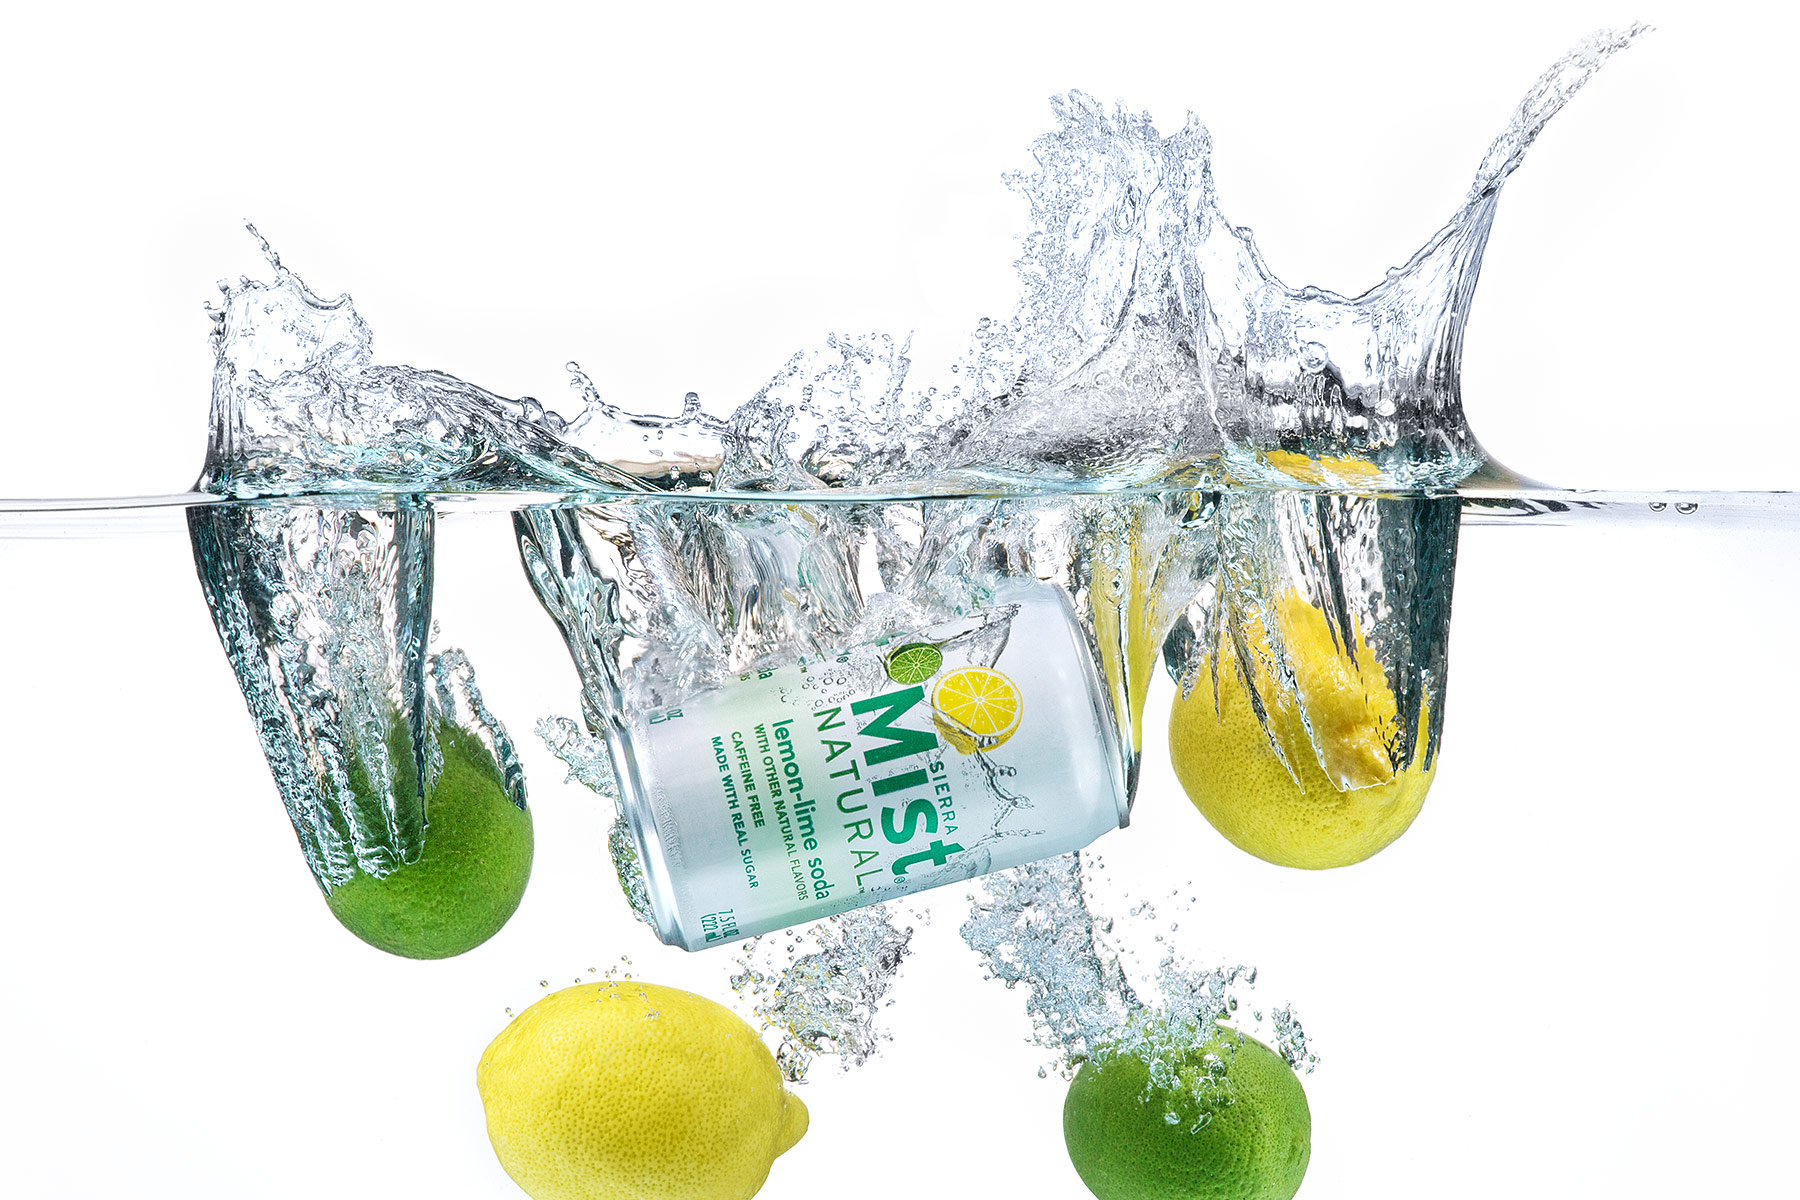 Sierra Mist Splash | Dovis Bird Agency Reps